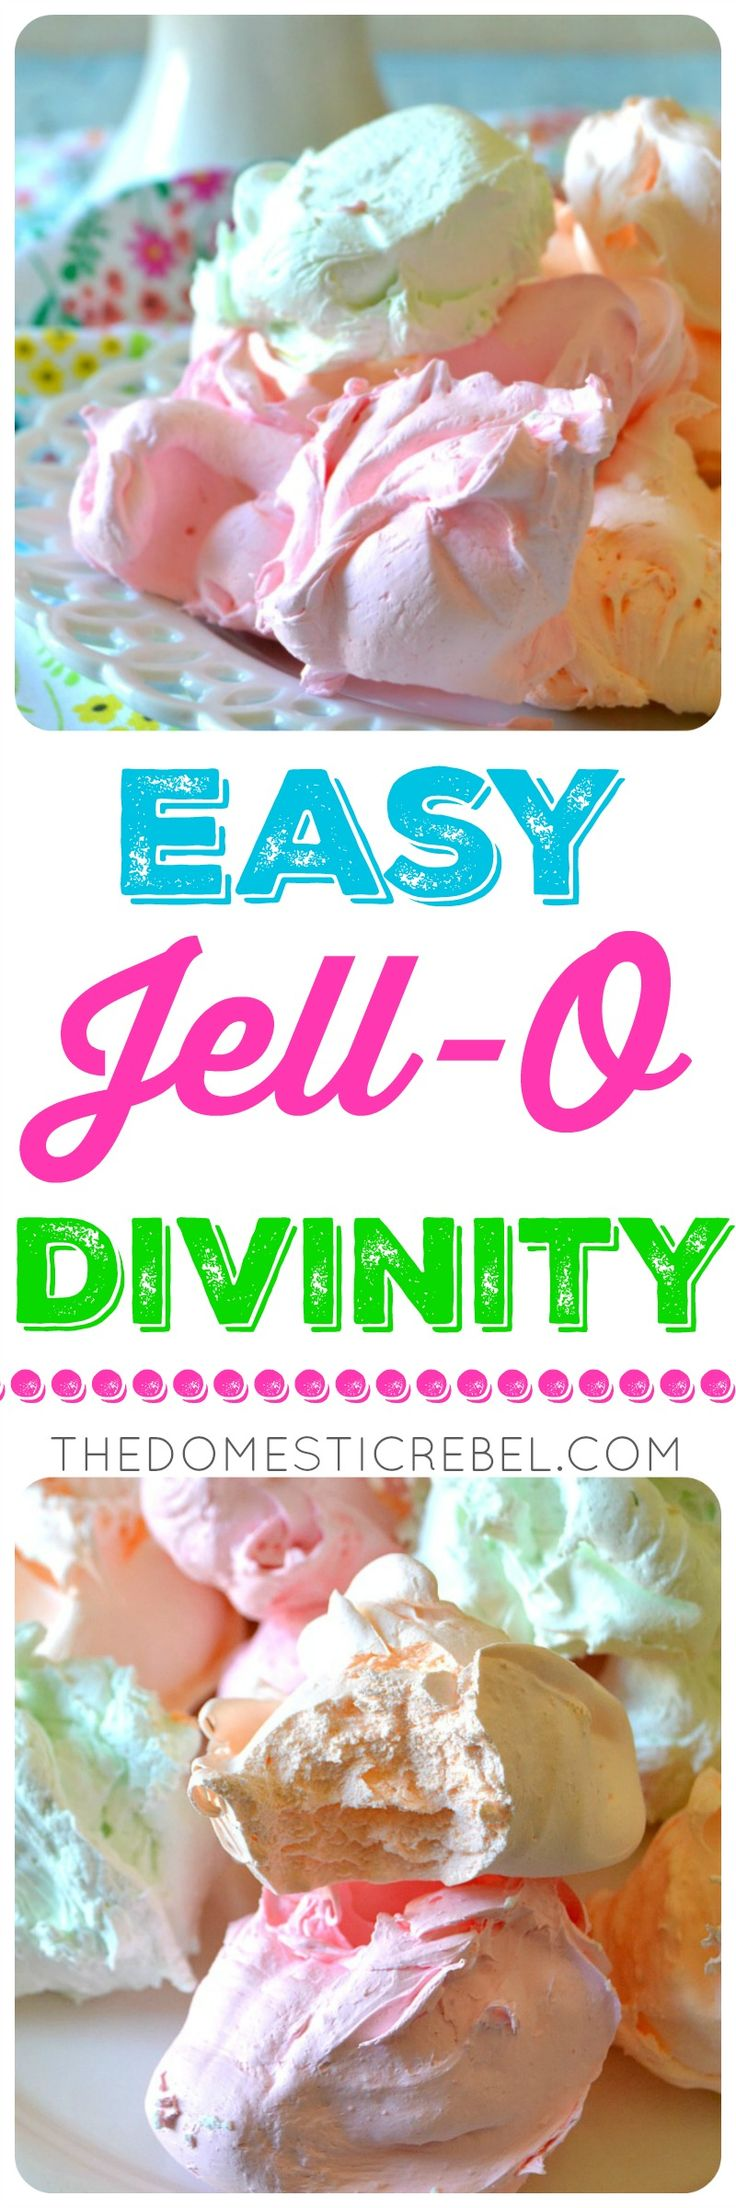 This EASY JELL-O DIVINITY is so simple to make with my step-by-step recipe! Fruity-flavored and pastel-colored divinity candy made with Jell-O. Light, surprisingly fudgy and nougat-y candy in flavors of the rainbow! Great for Easter, or springtime!